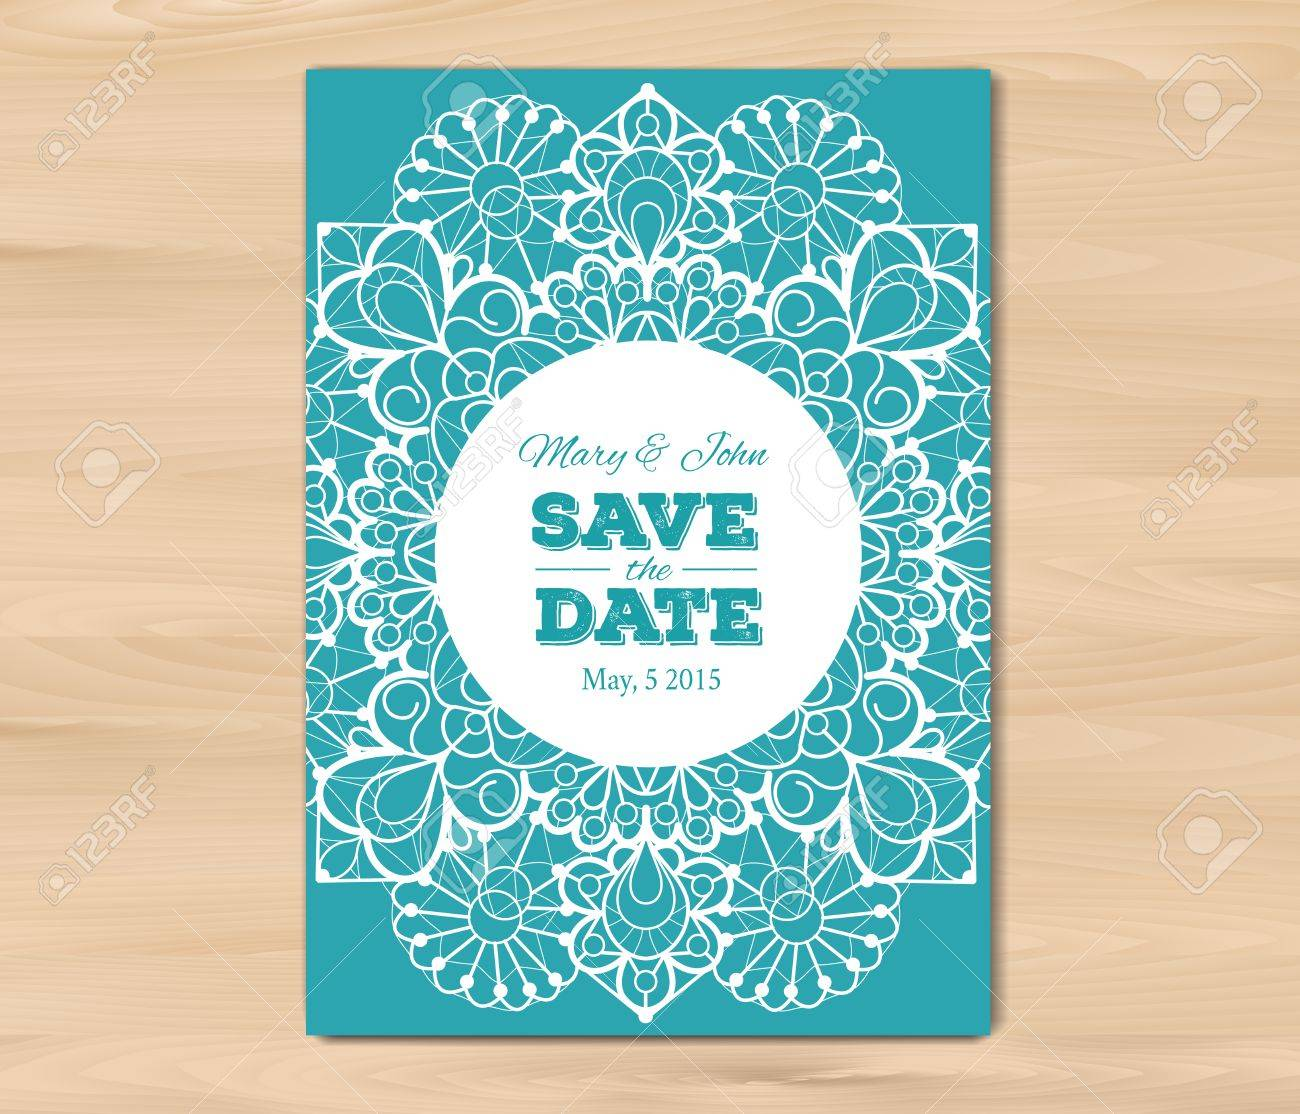 Wedding Invitation. Save The Date Card Template On A Wooden ...